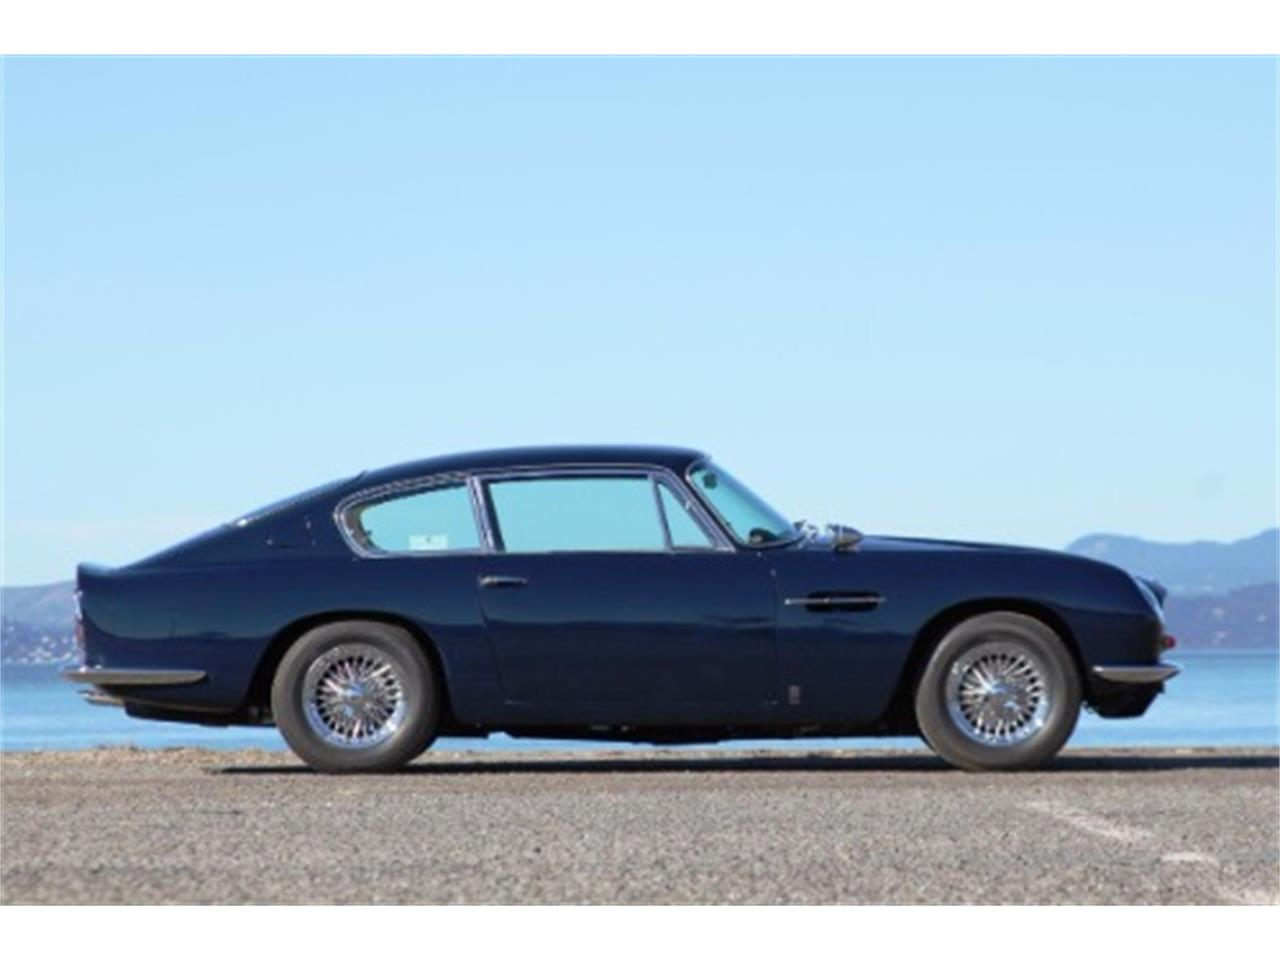 Large Picture of 1967 DB6 located in Astoria New York - $389,500.00 Offered by Gullwing Motor Cars - M747